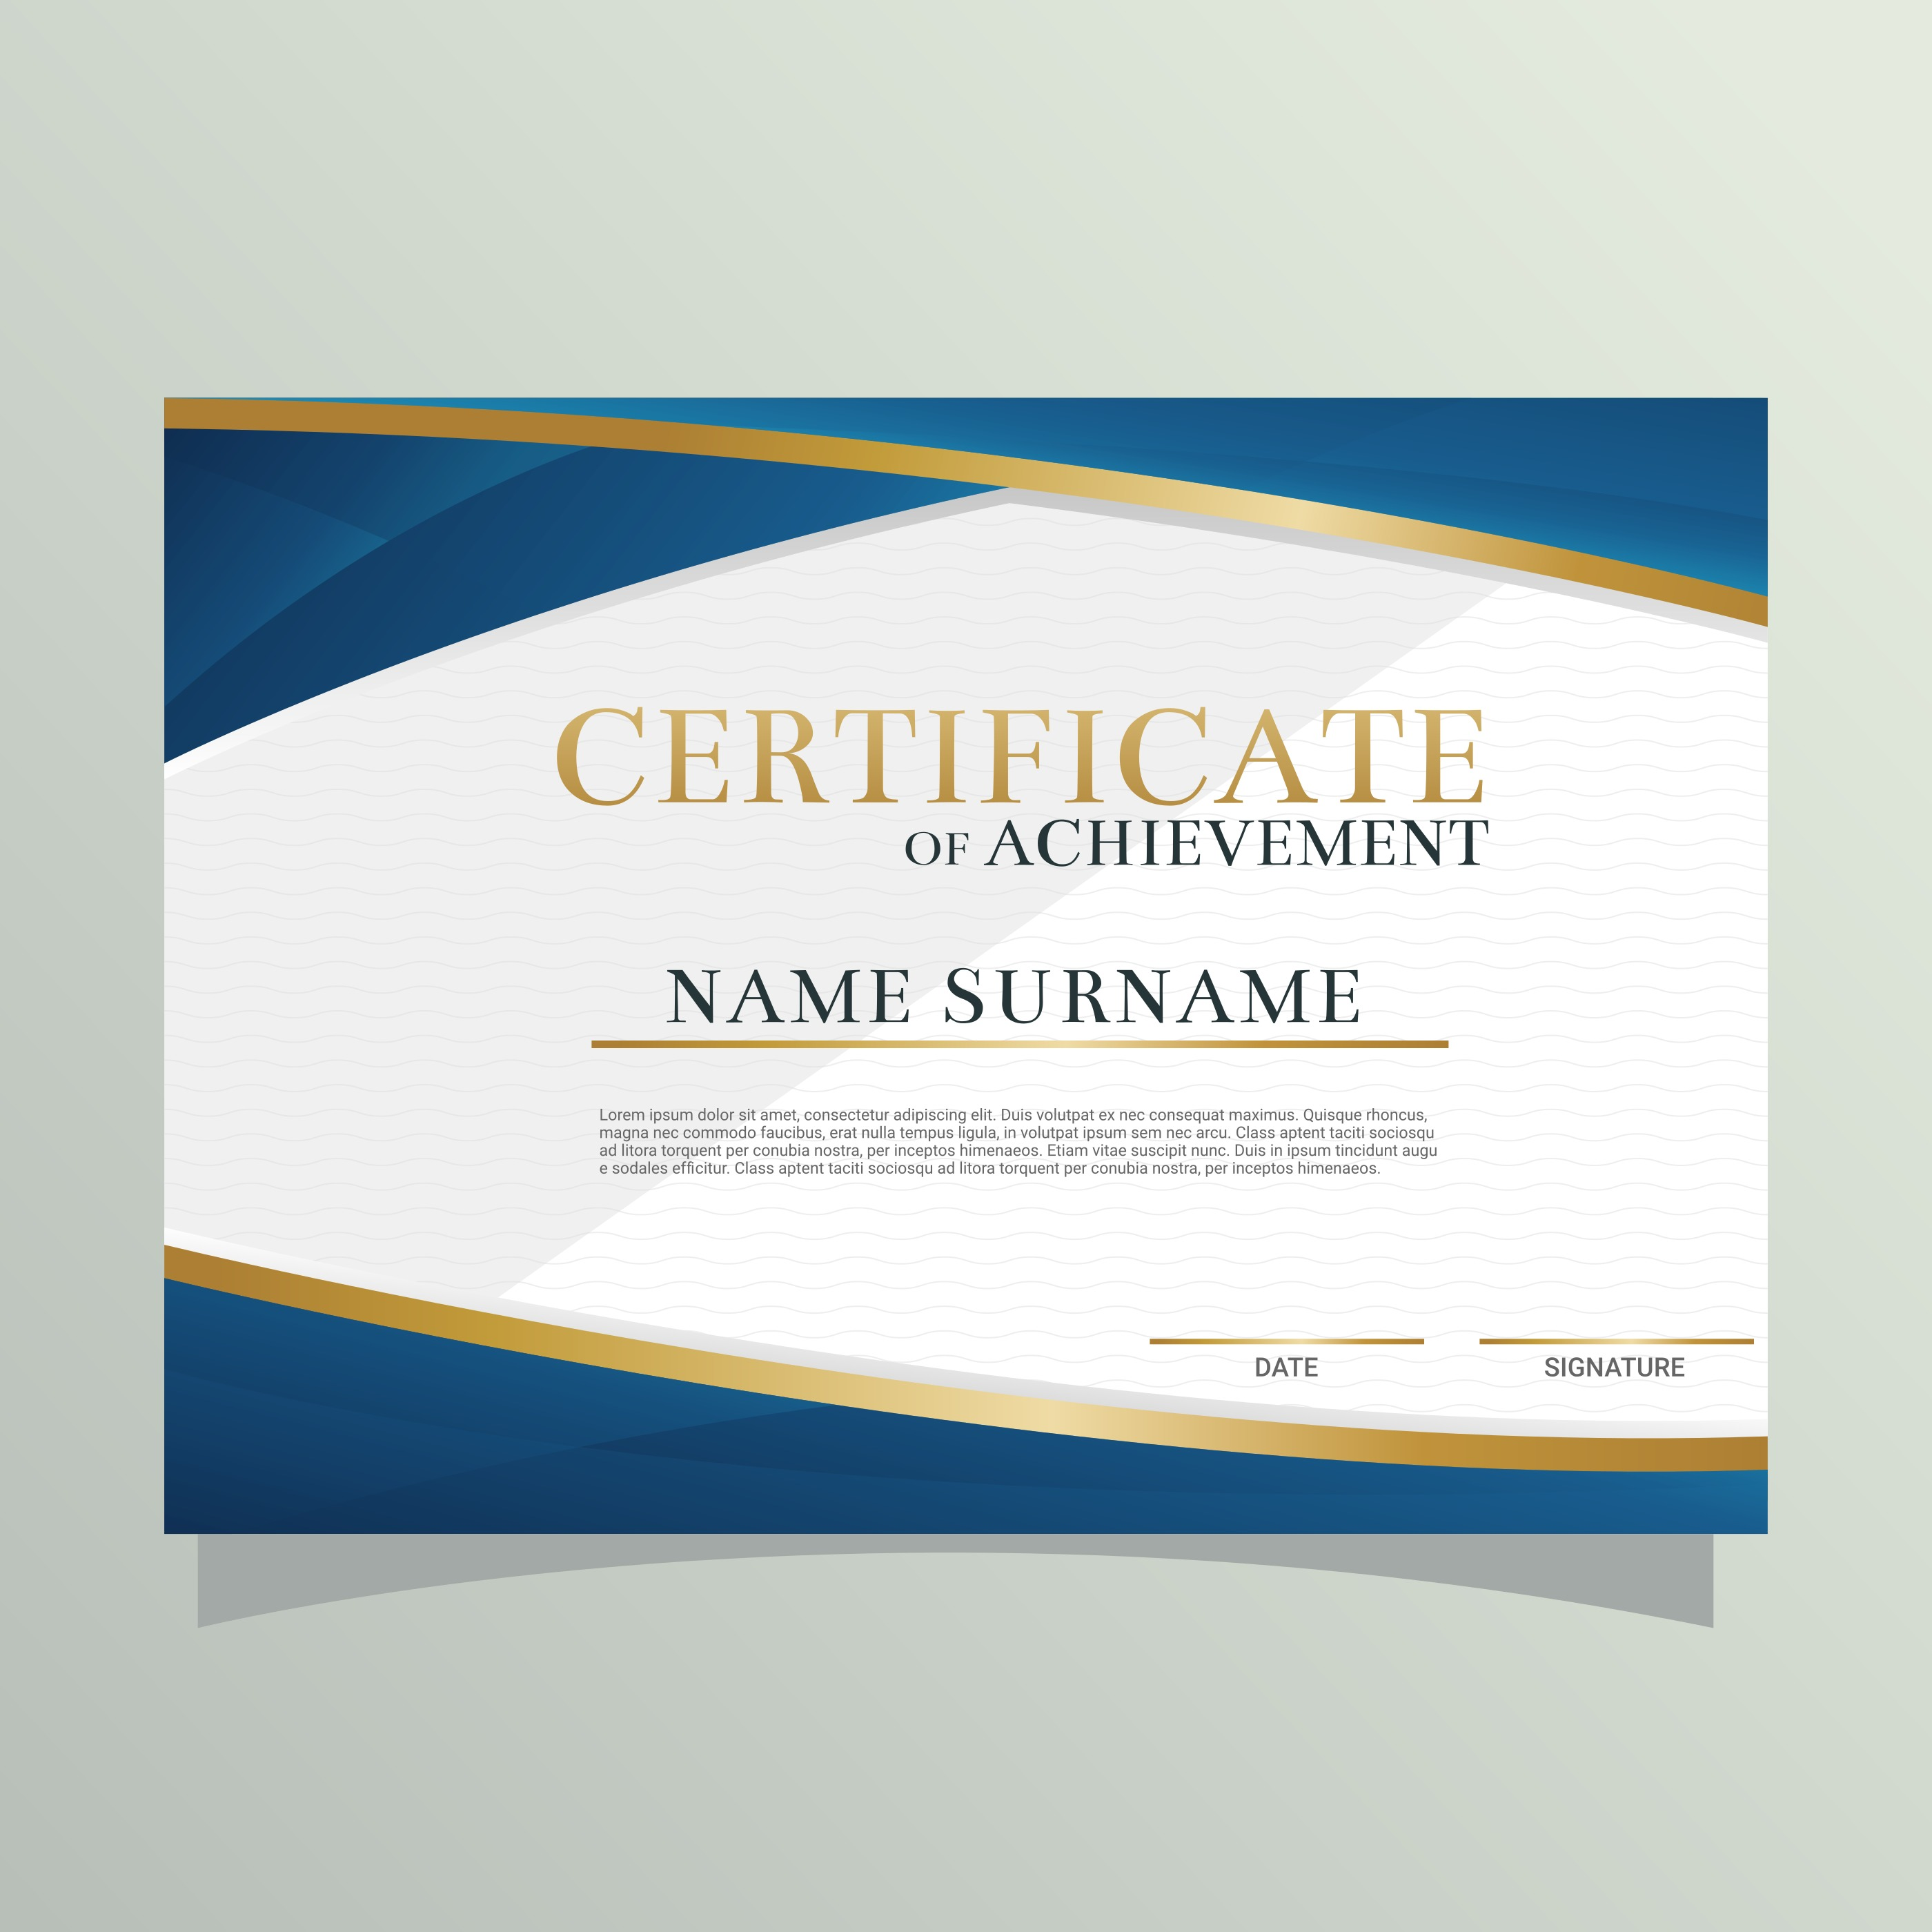 Diploma Certificate Vector - Download Free Vector Art ...